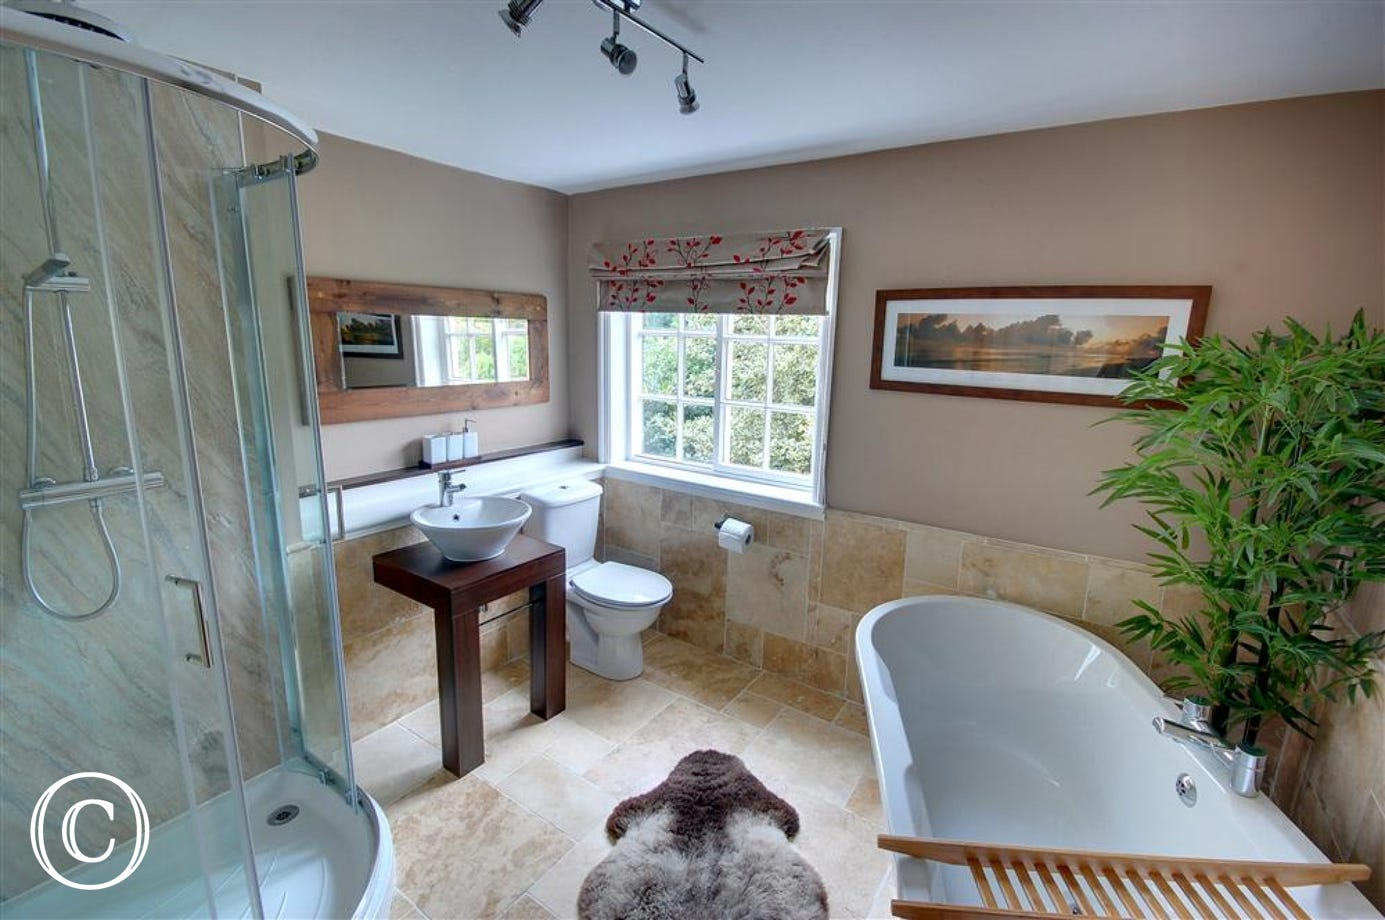 Modern Bathroom with large walk-in shower and free-standing bath.